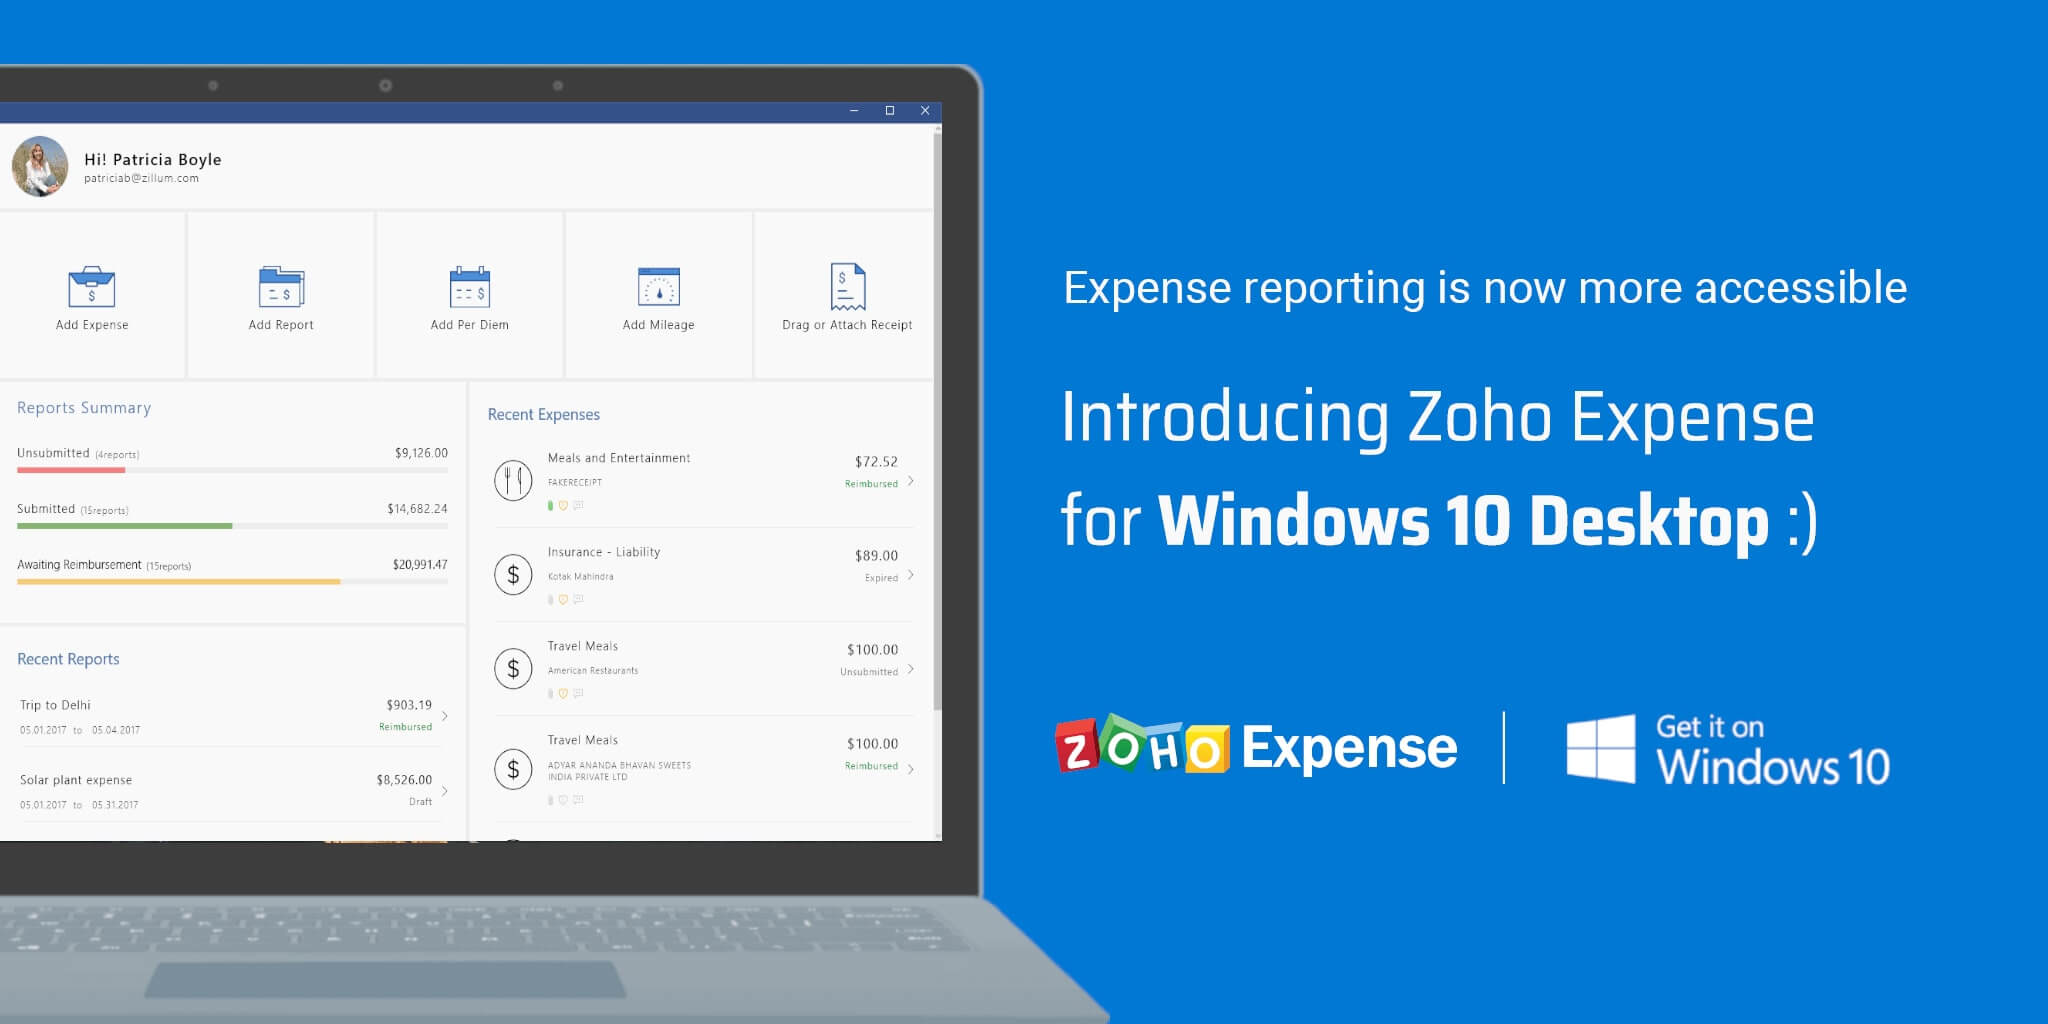 Introducing Zoho Expense for Windows 10 Desktop: Expense reporting is now more accessible